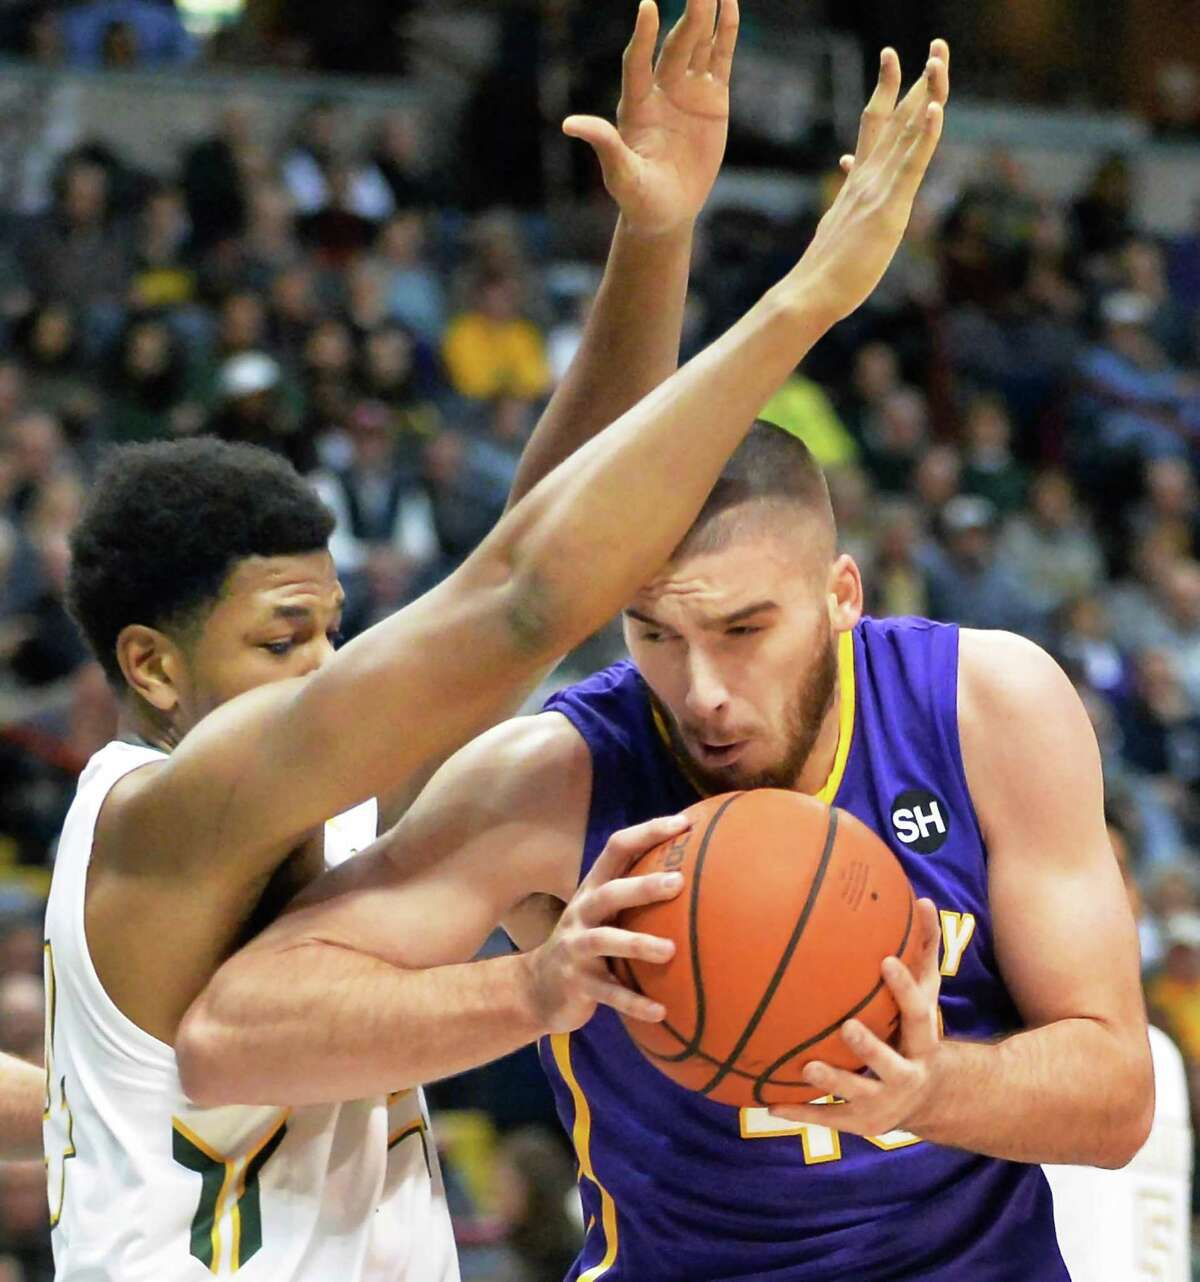 UAlbany's #43 Greig Stire battles Siena's #24 Lavon Long, left, during Saturday's game at the Times Union Center Dec. 12, 2015 in Albany, NY. (John Carl D'Annibale / Times Union)